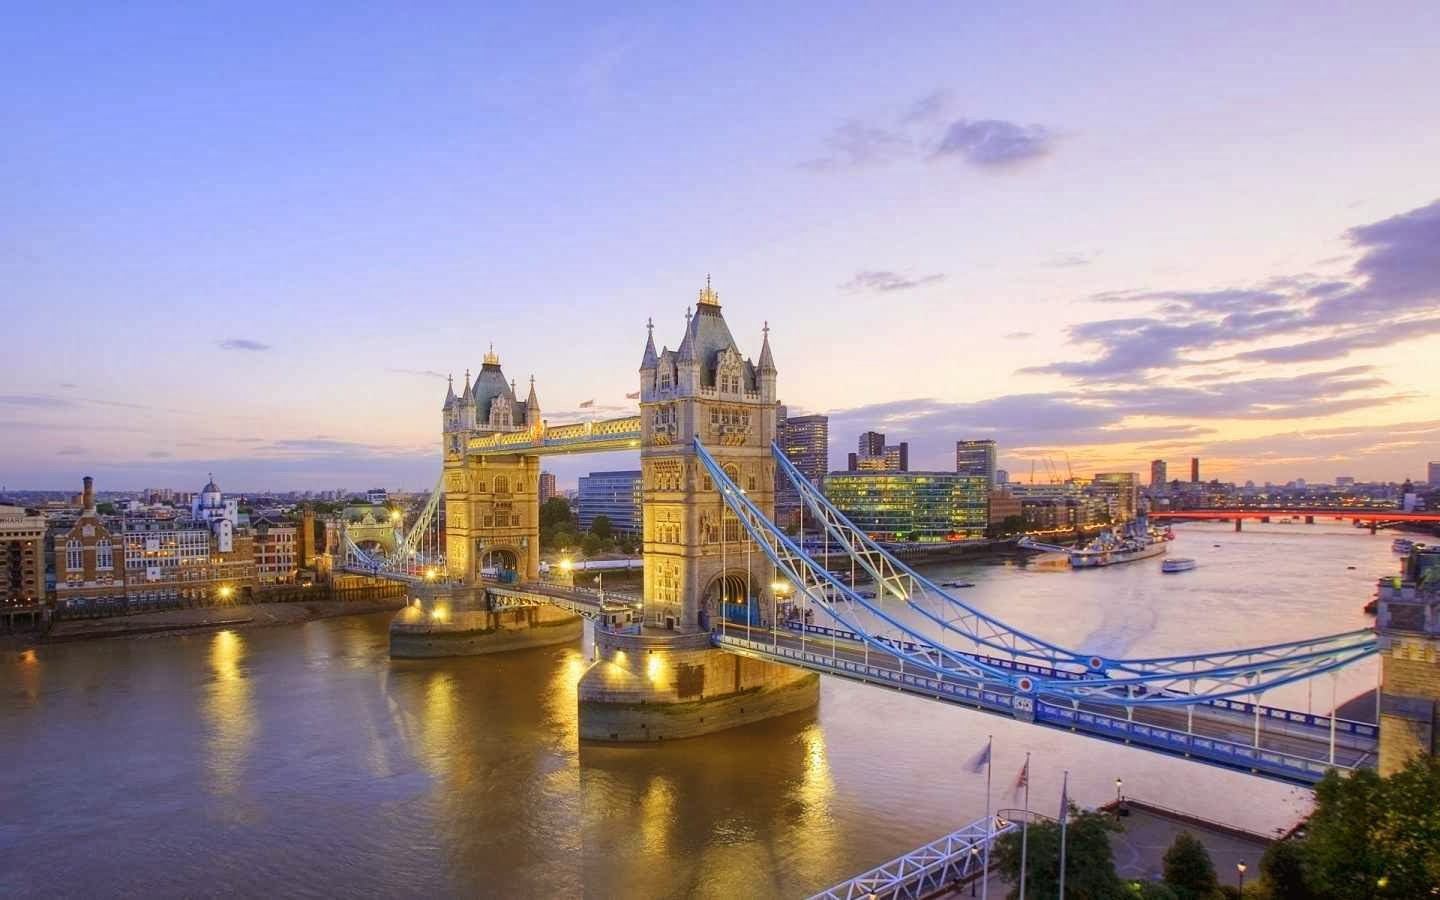 Desktop HD London street wallpapers  wallpapermonkey HD Wallpapers Free Download 1440x900